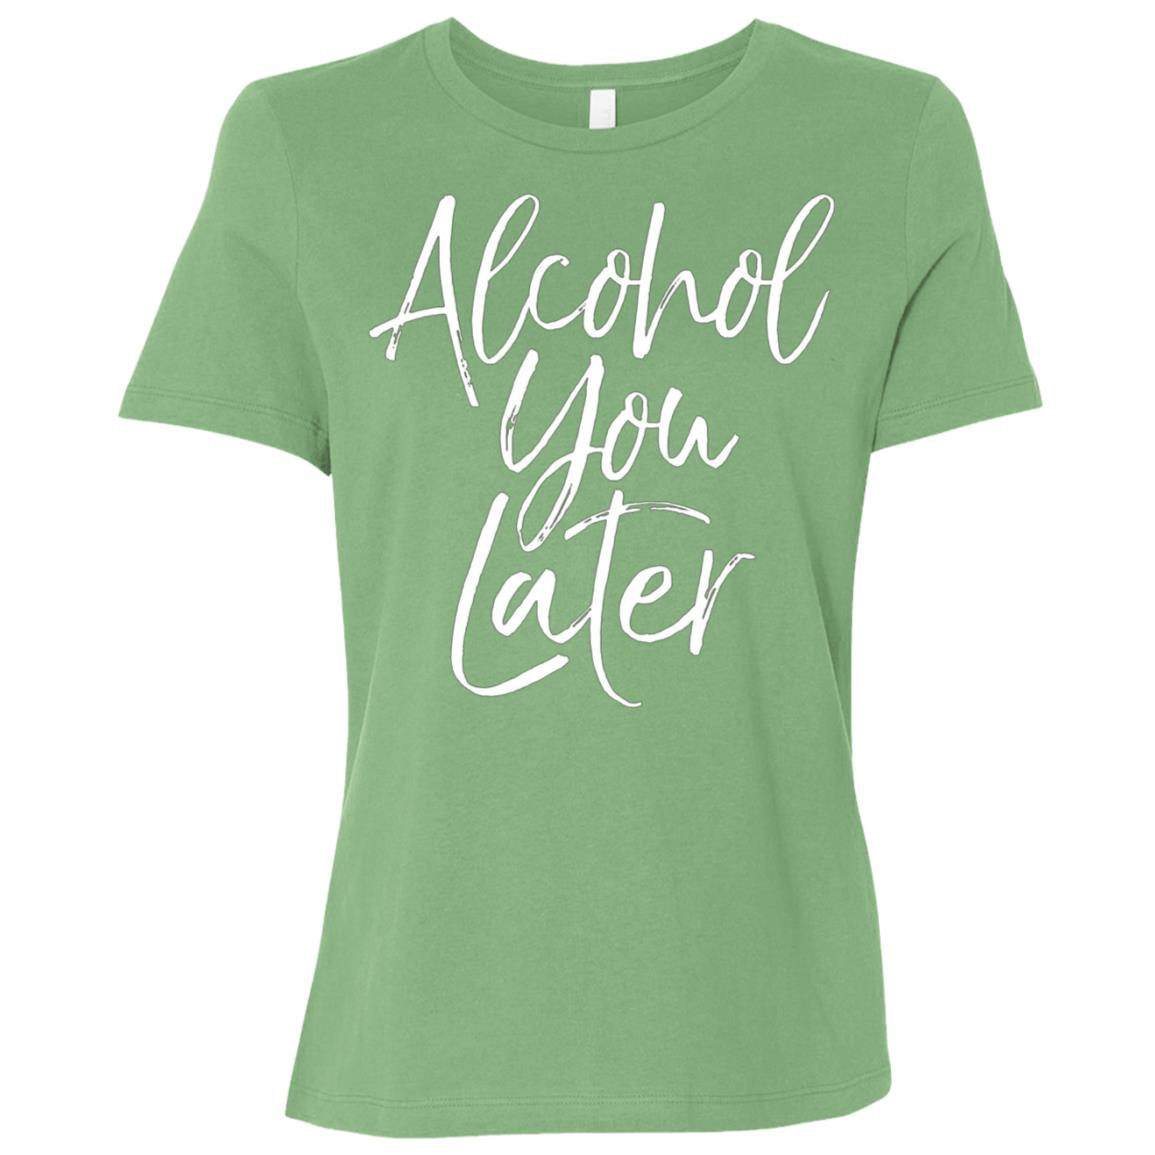 Alcohol You Later Funny Beer Pun Call You Drinking Tee Women Short Sleeve T-Shirt